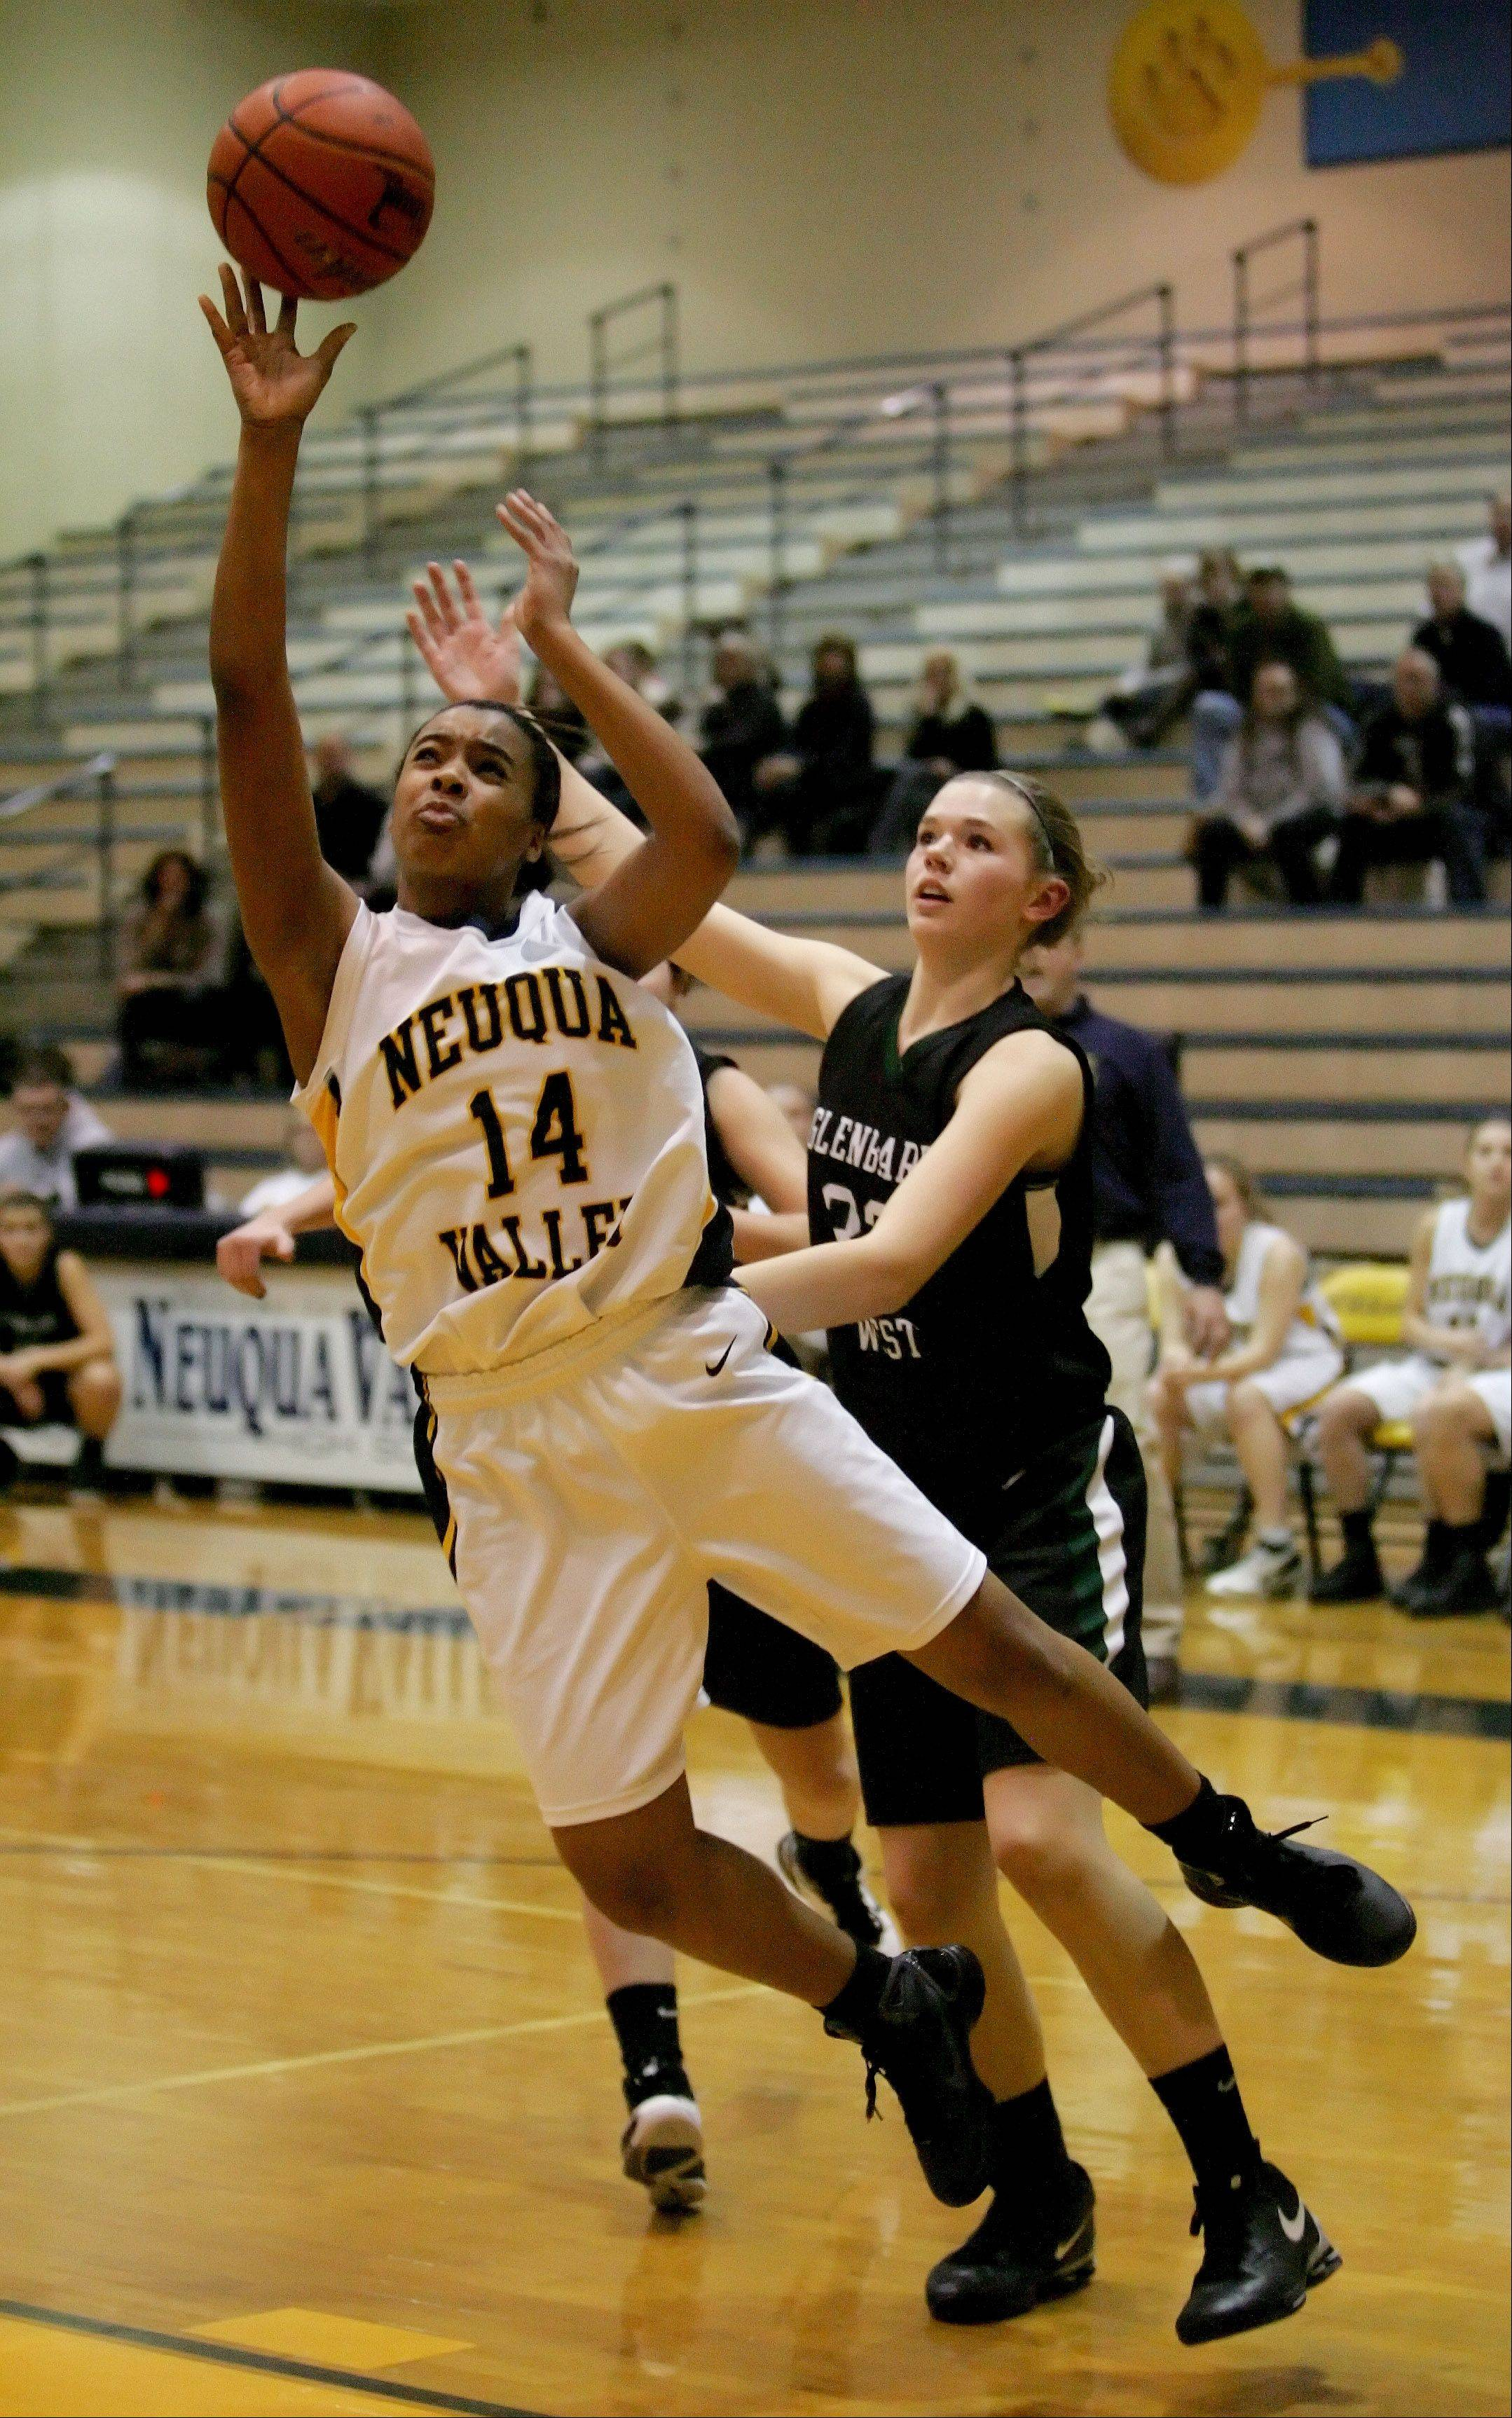 Najee Smith of Neuqua Valley moves in front of Ellen Nighbor of Glenbard West to make a basket in girls basketball action Tuesday in Naperville.